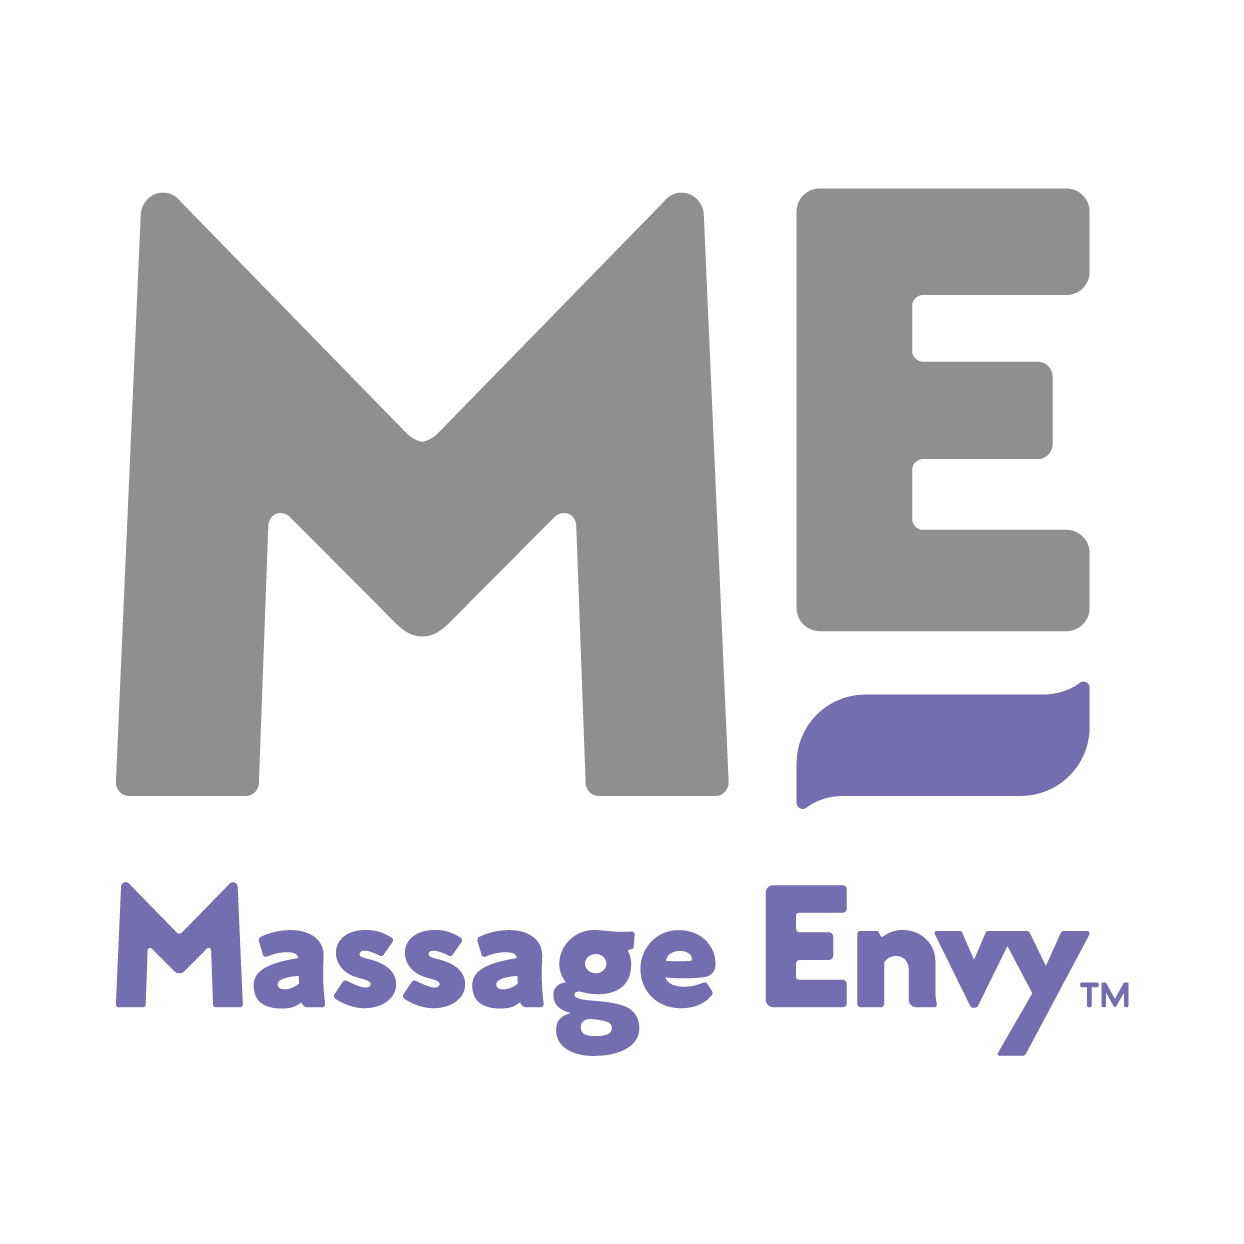 Massage Spa in NY Commack 11725 Massage Envy - Commack 5001 Jericho Turnpike  (631)499-3689